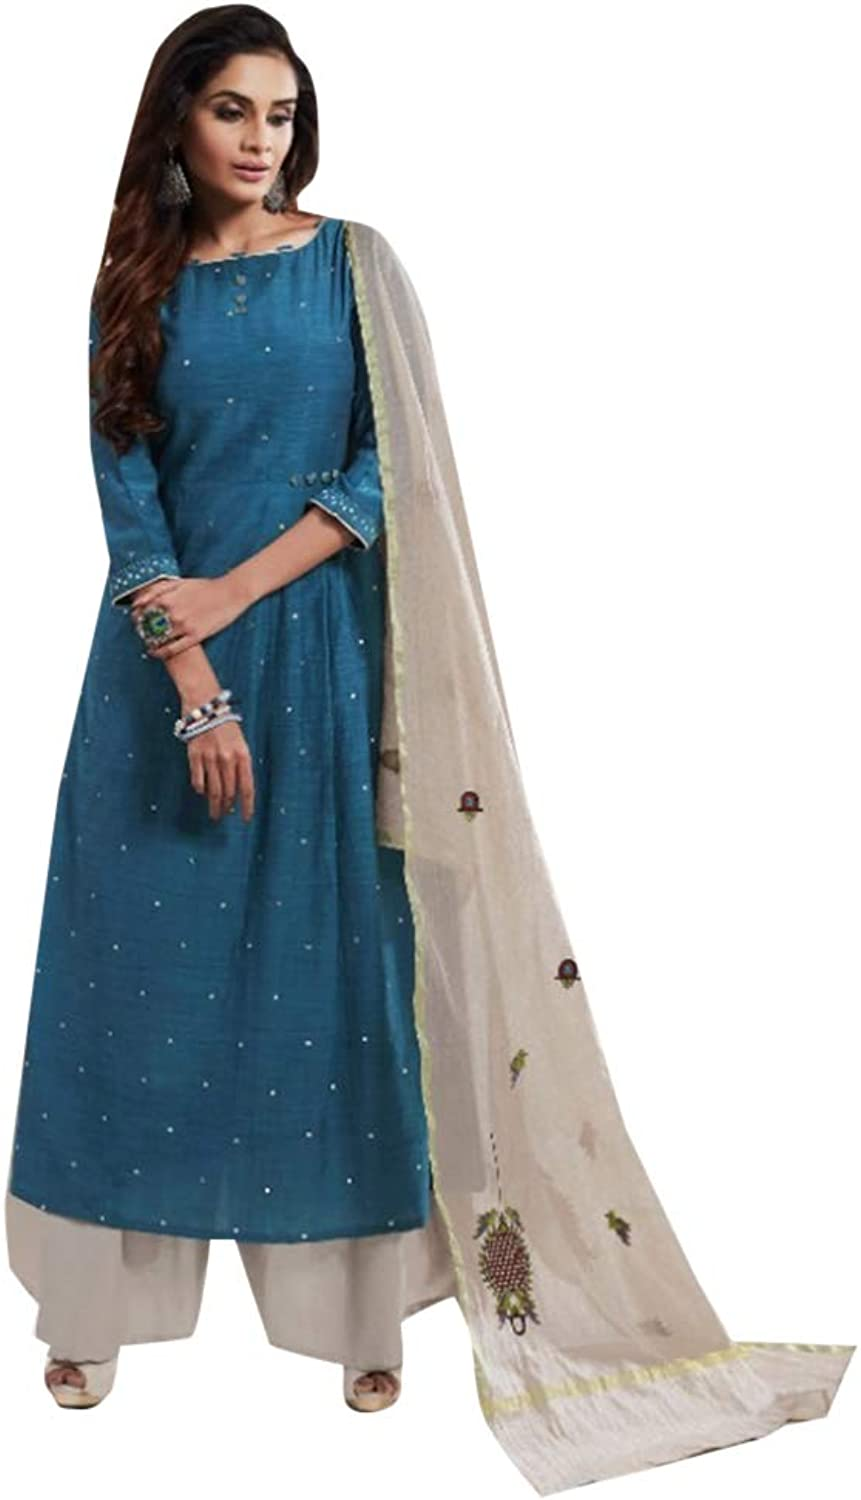 Cerulean Stylish Designer Bemberg Slub Palazzo Salwar Kameez Suit Indian Women Ethnic wear 7746